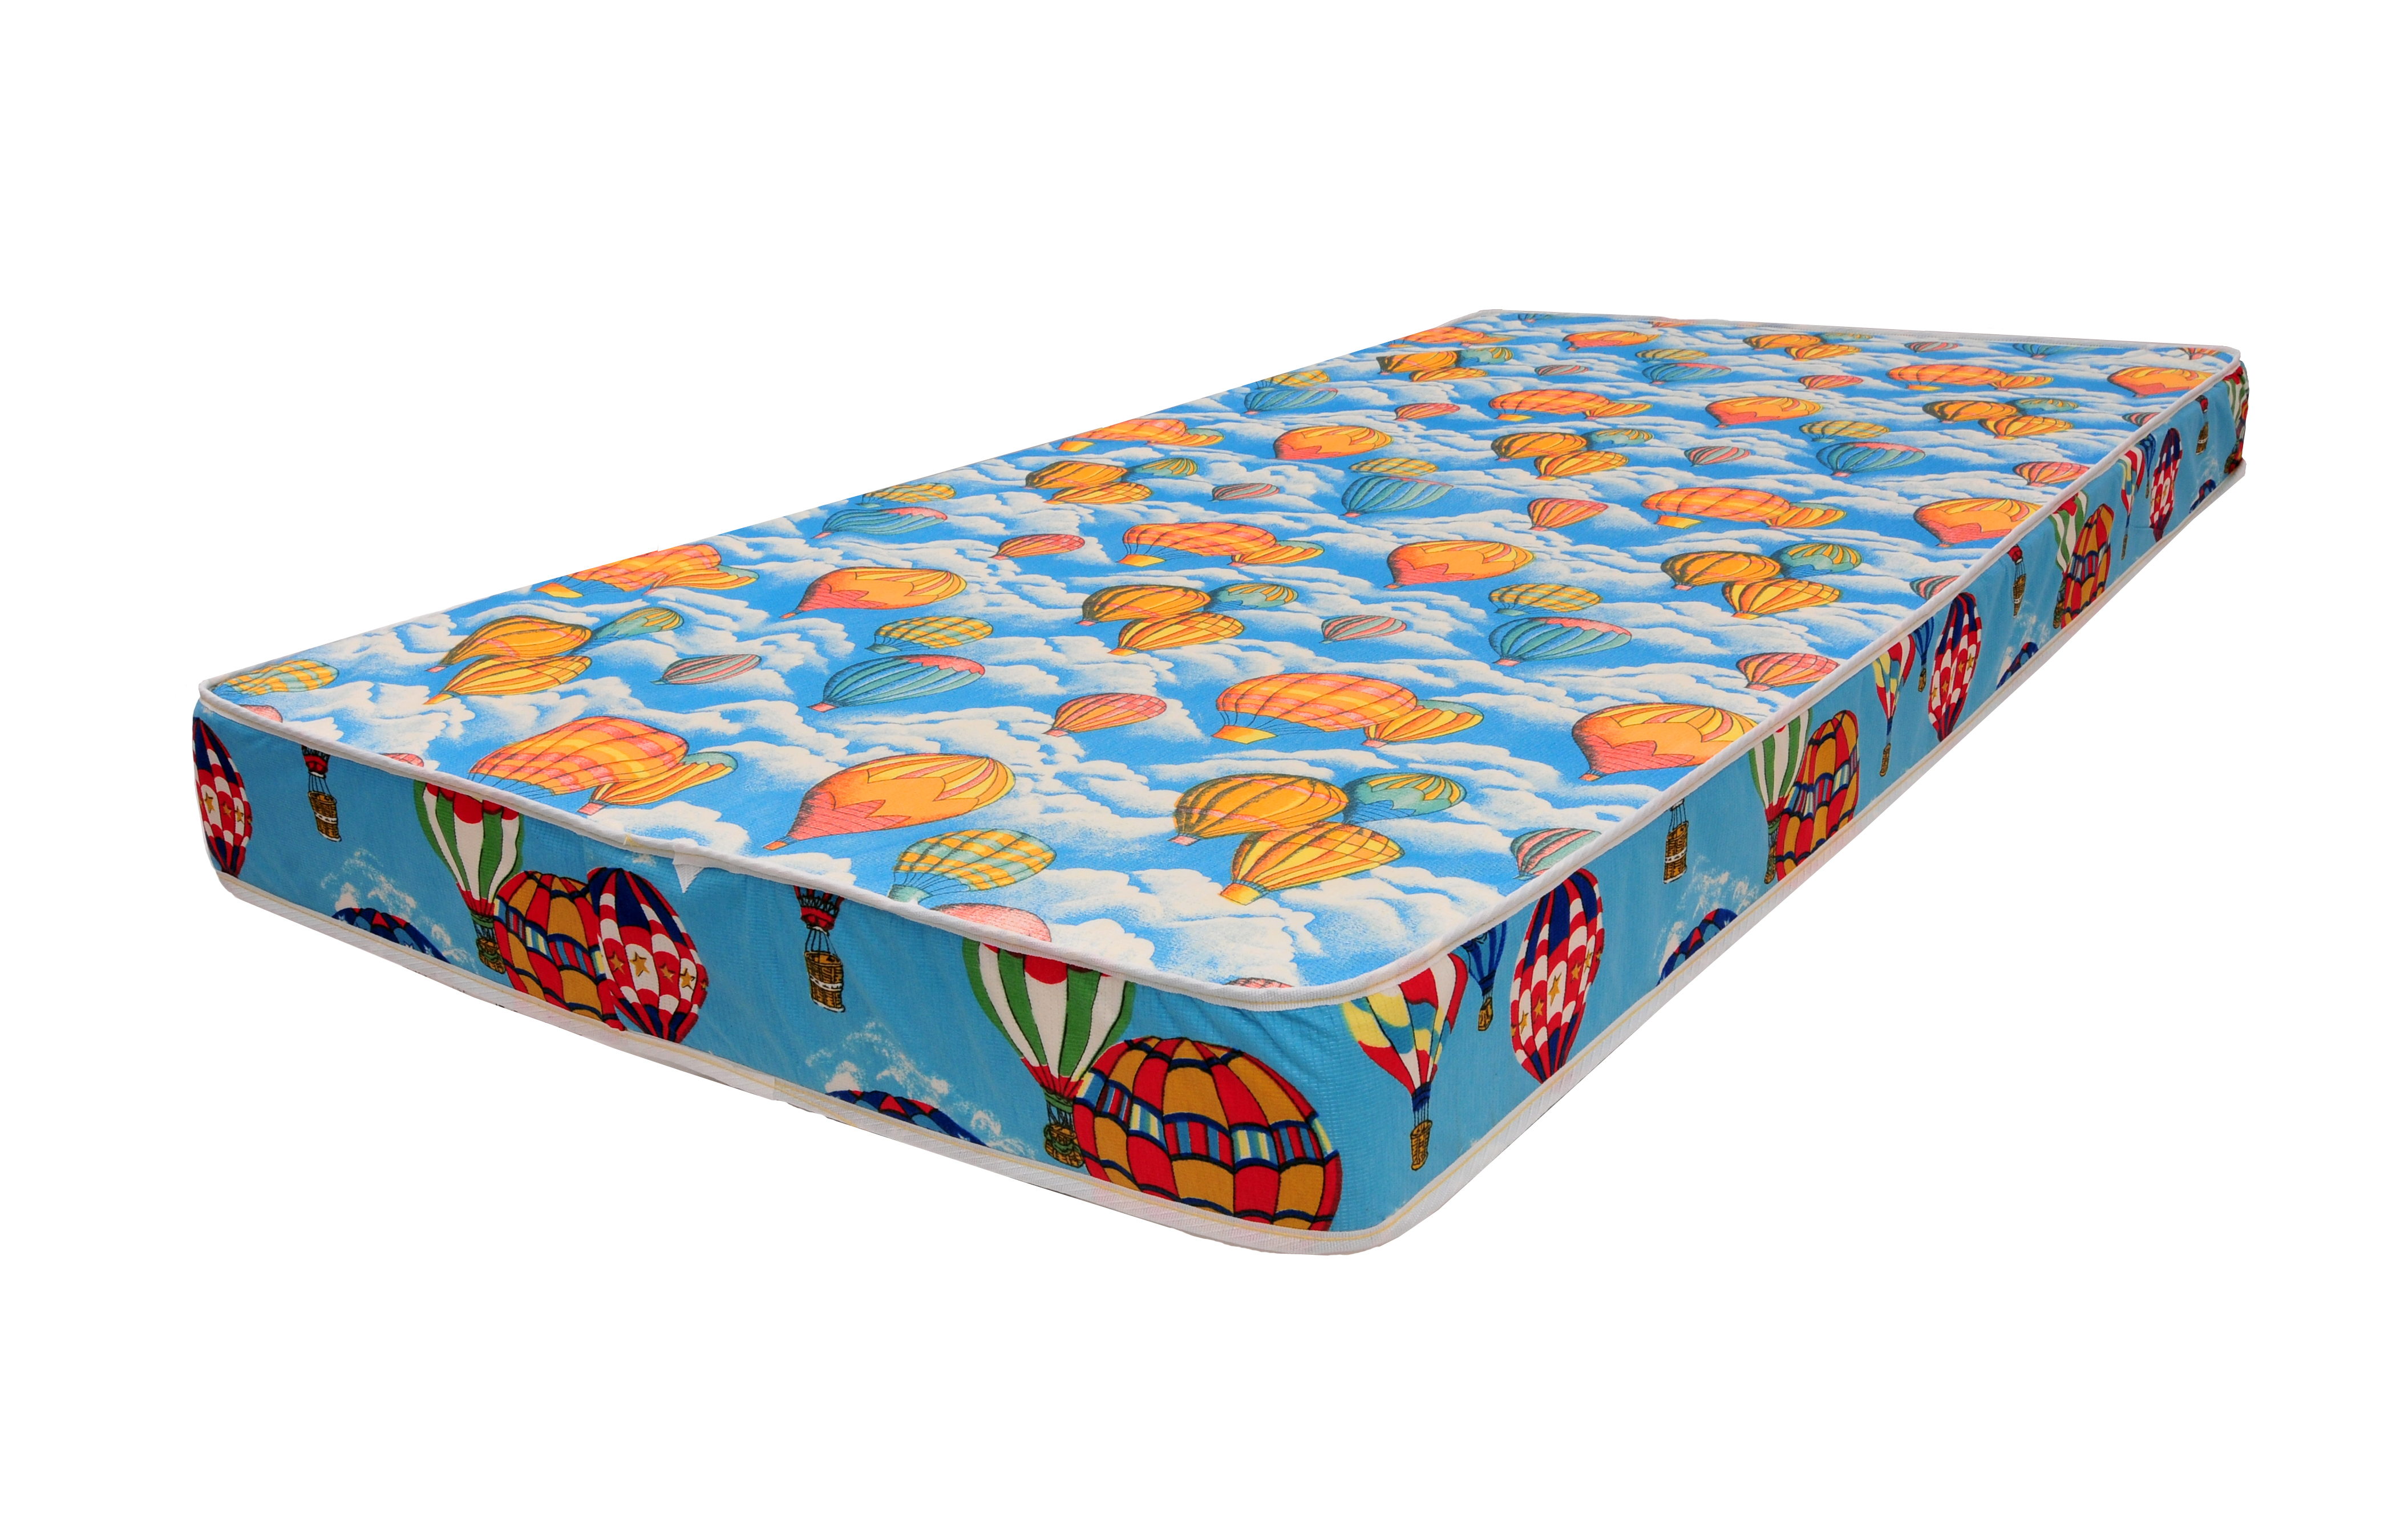 Image Result For Flippable Mattress